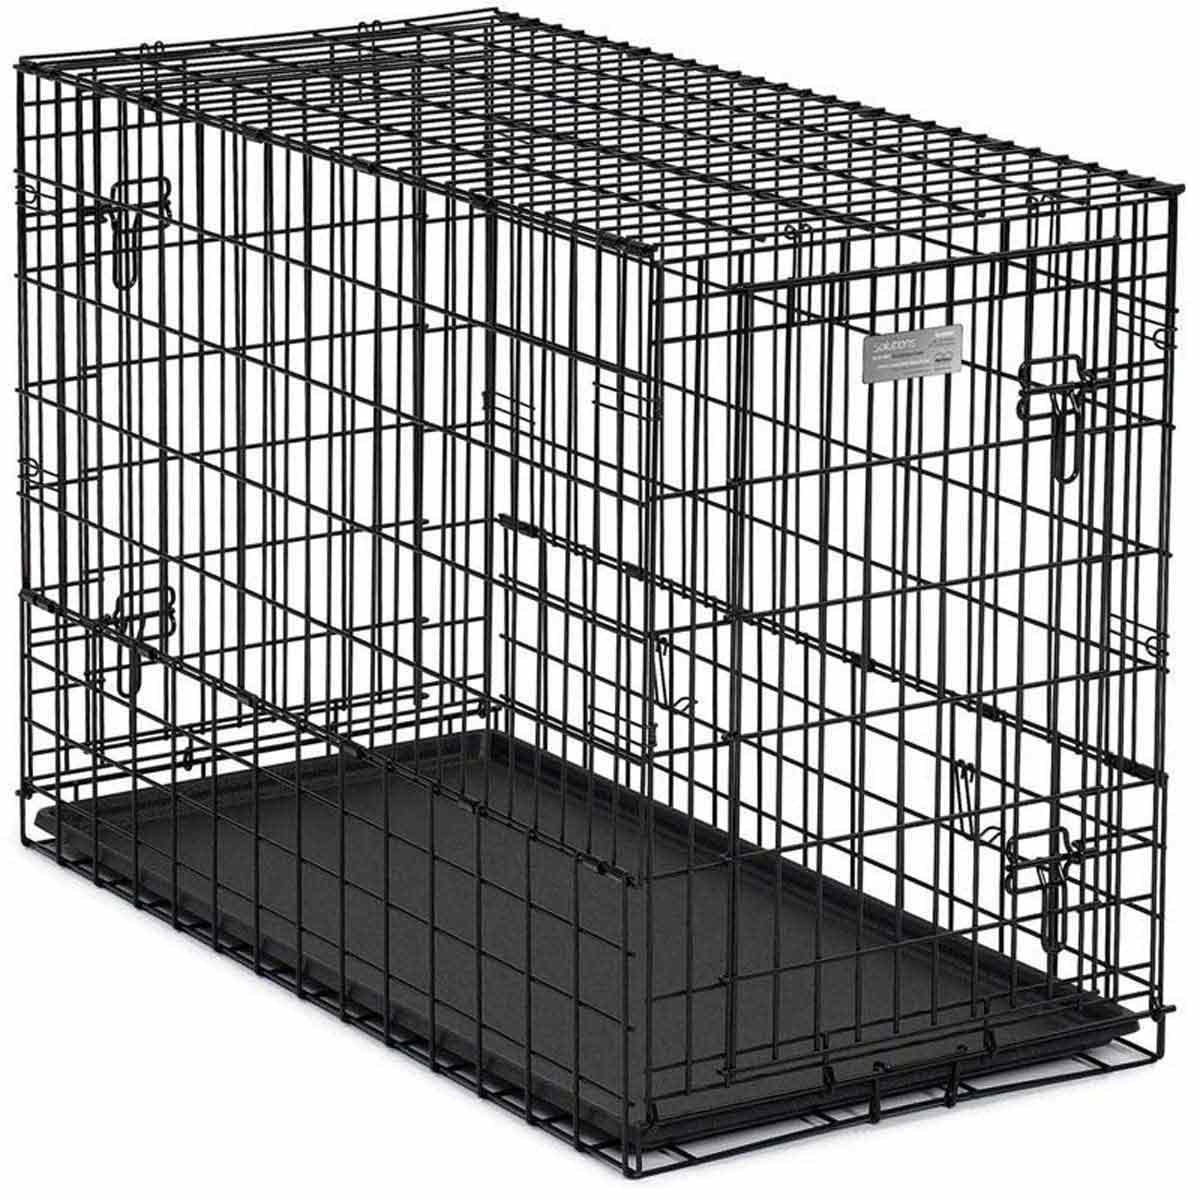 Midwest Solutions SUV Double Door Crate Kennel - 42 X 21 X 30 inches